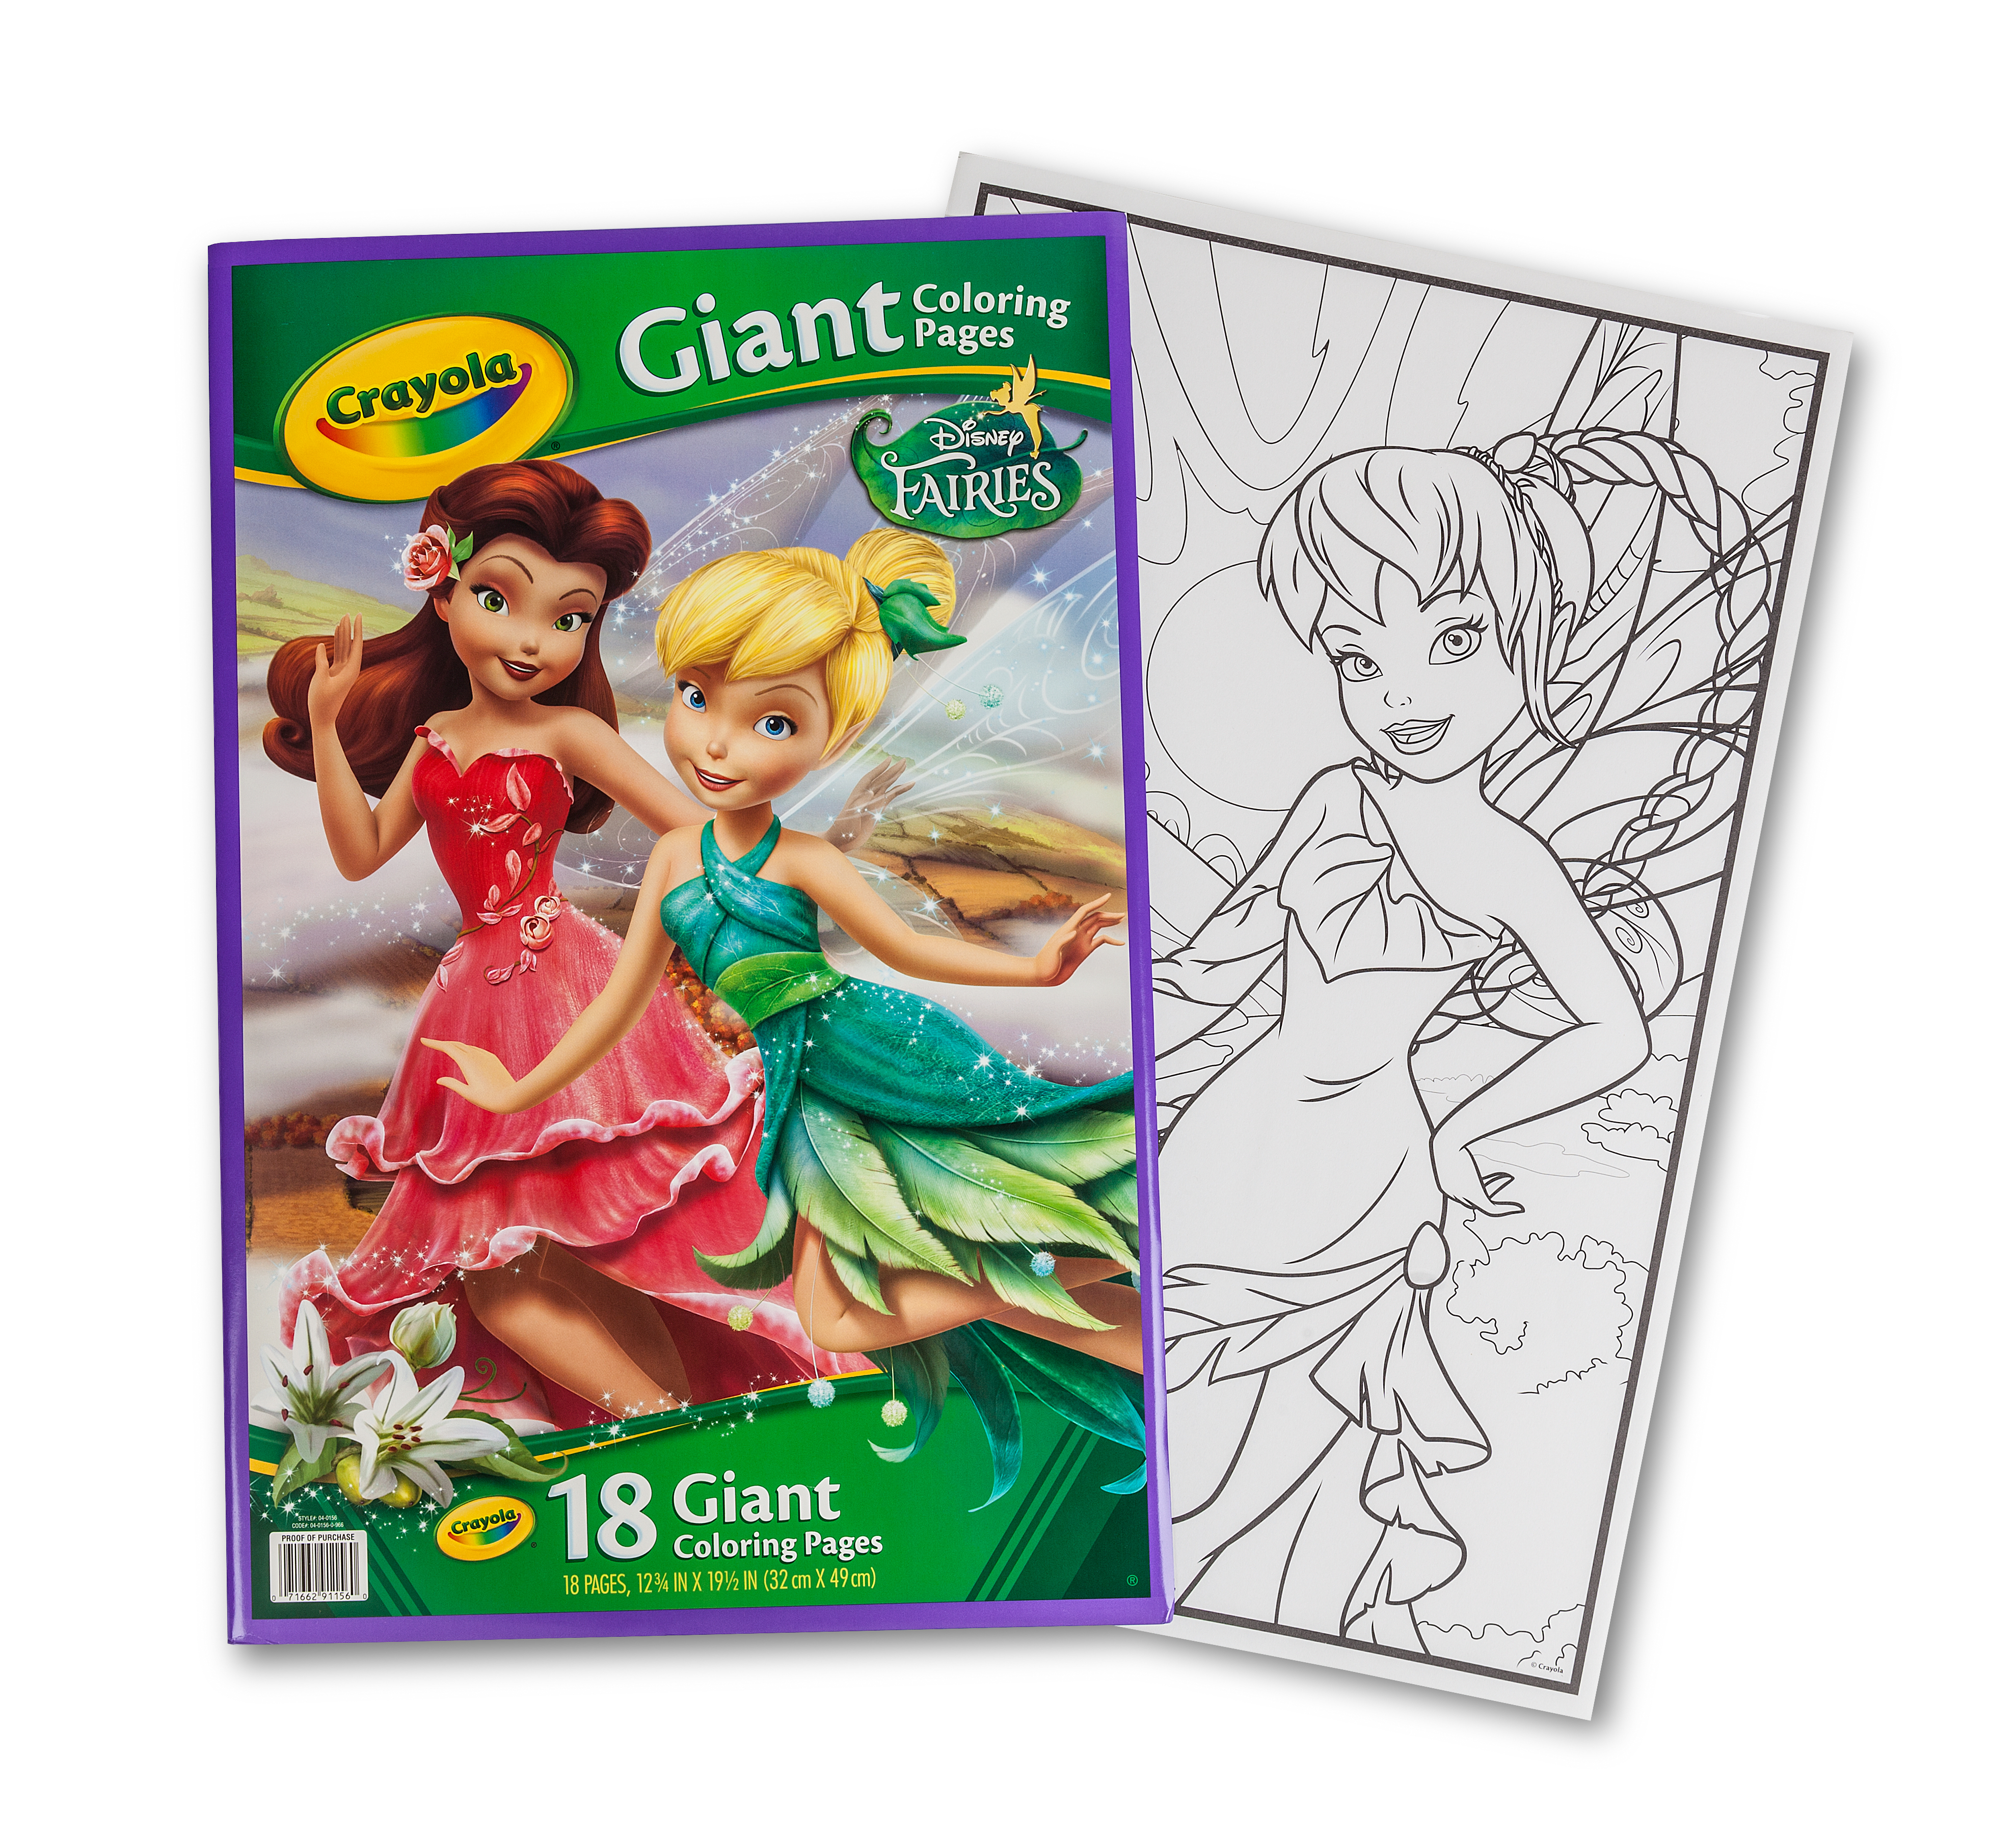 Giant Coloring Pages - Fairies  Crayola